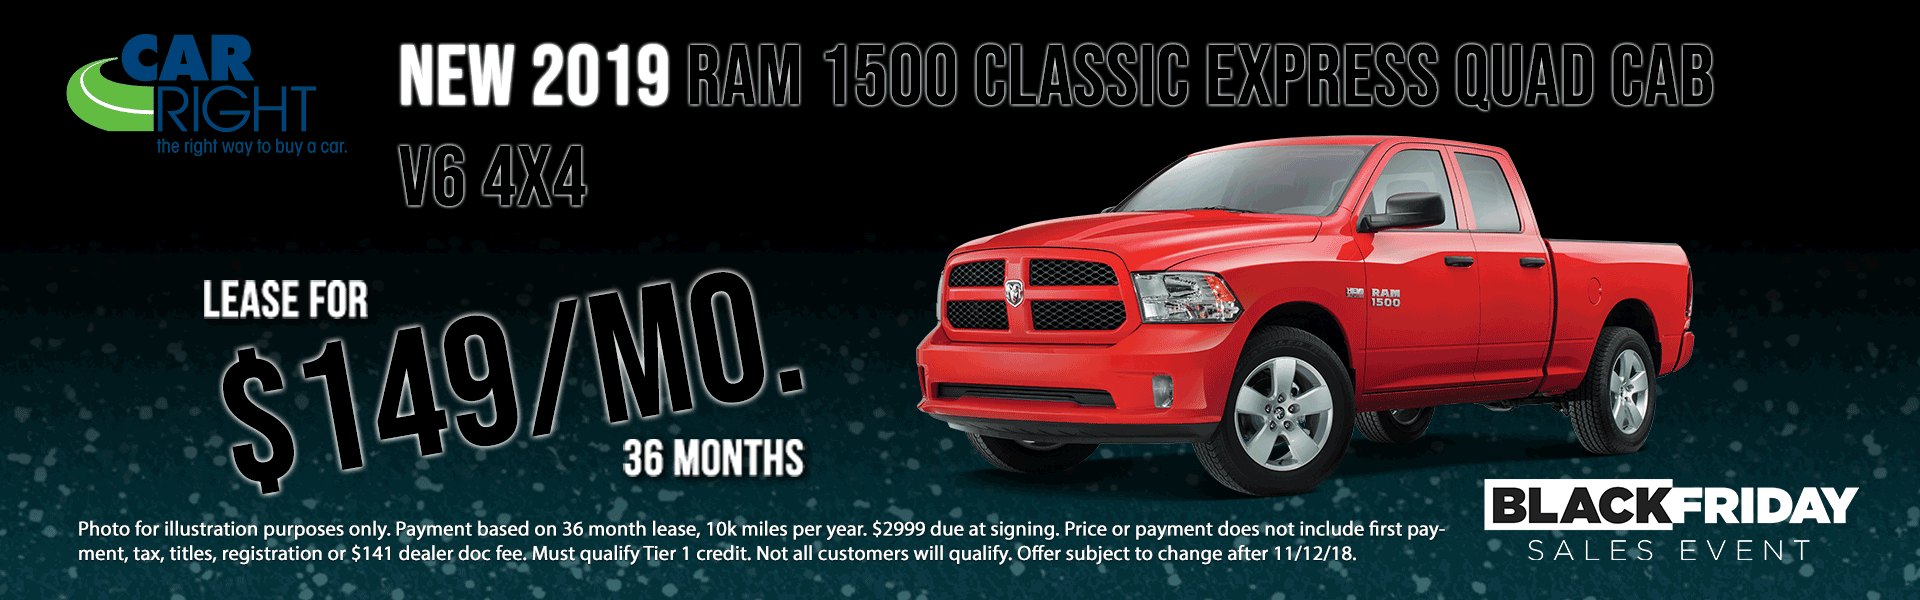 B3176---NEW-2019-V6-Ram-1500-Classic-Quad-Cab-Express carright new vehicle specials carright specials chrysler specials dodge specials jeep specials ram specials lease specials moon township buy your car right the right way to buy a car ram city sale